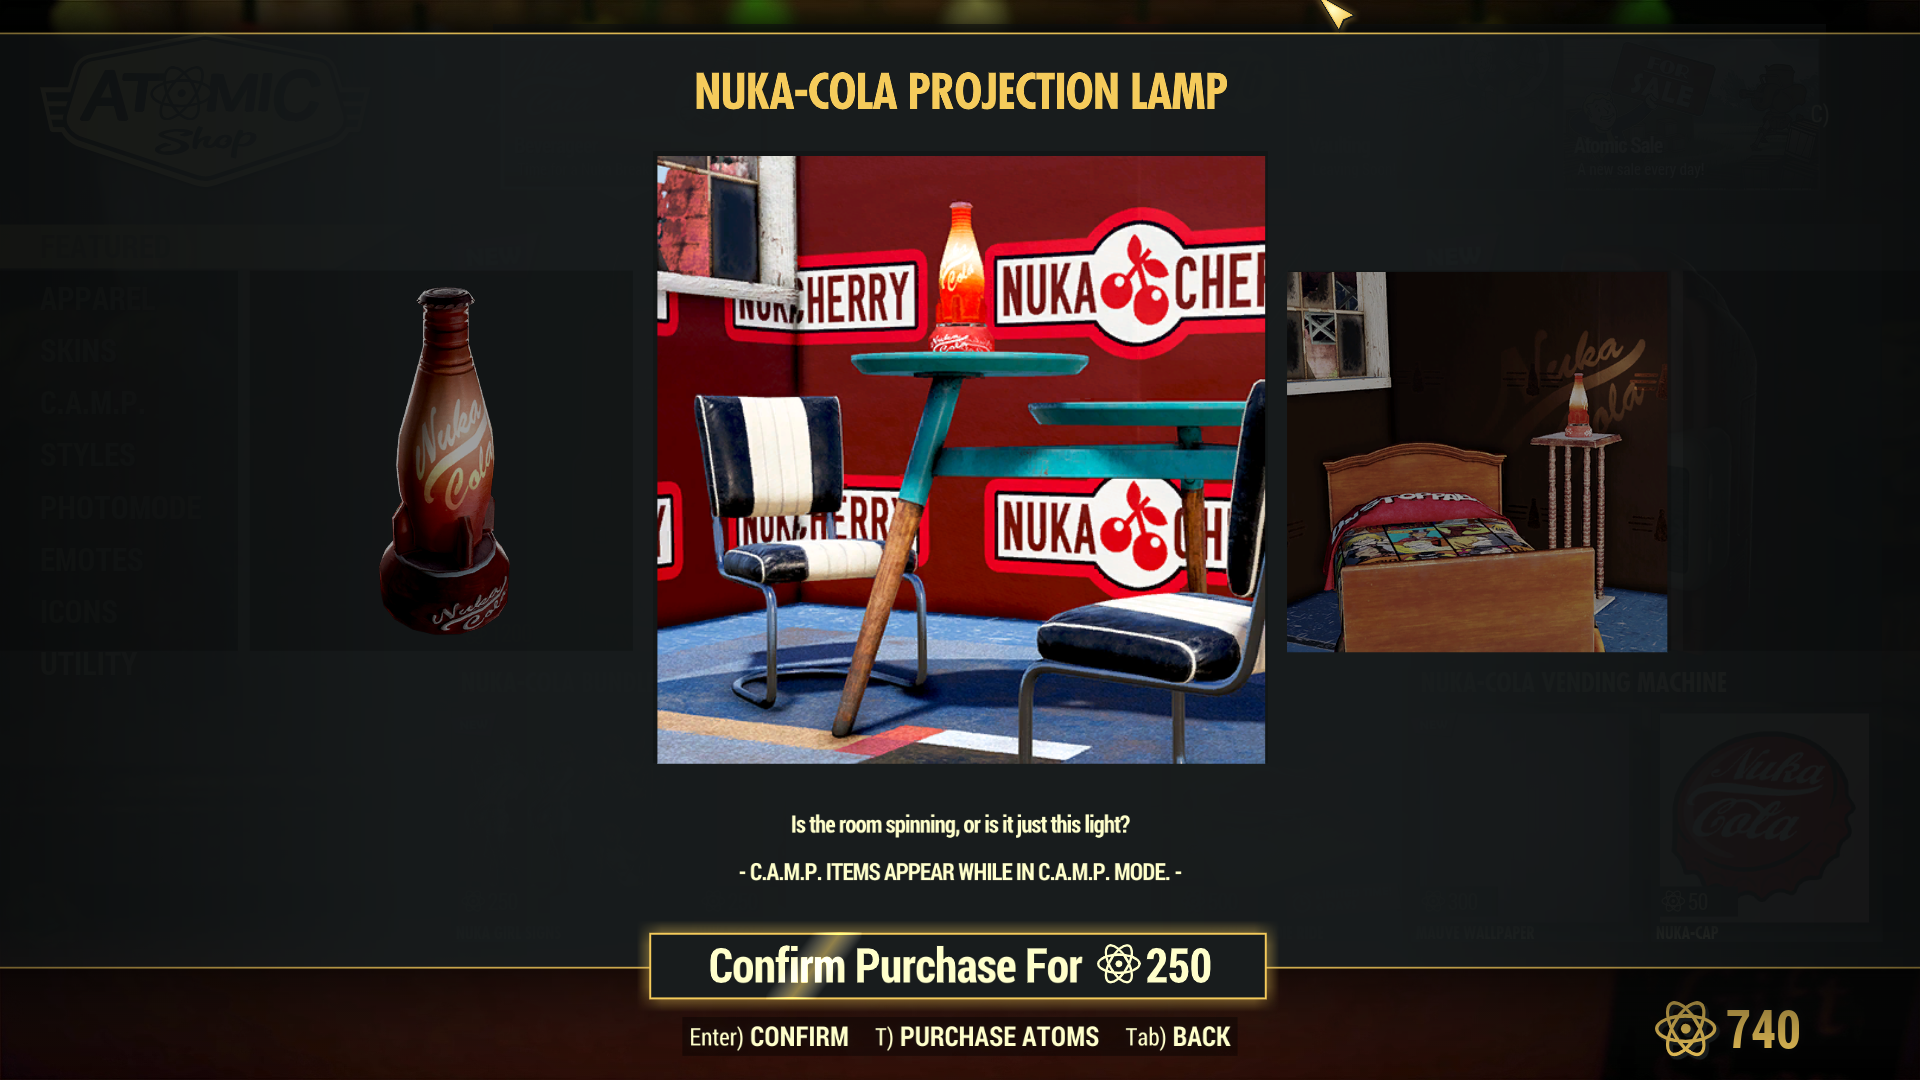 Nuka-Cola Projection Lamp